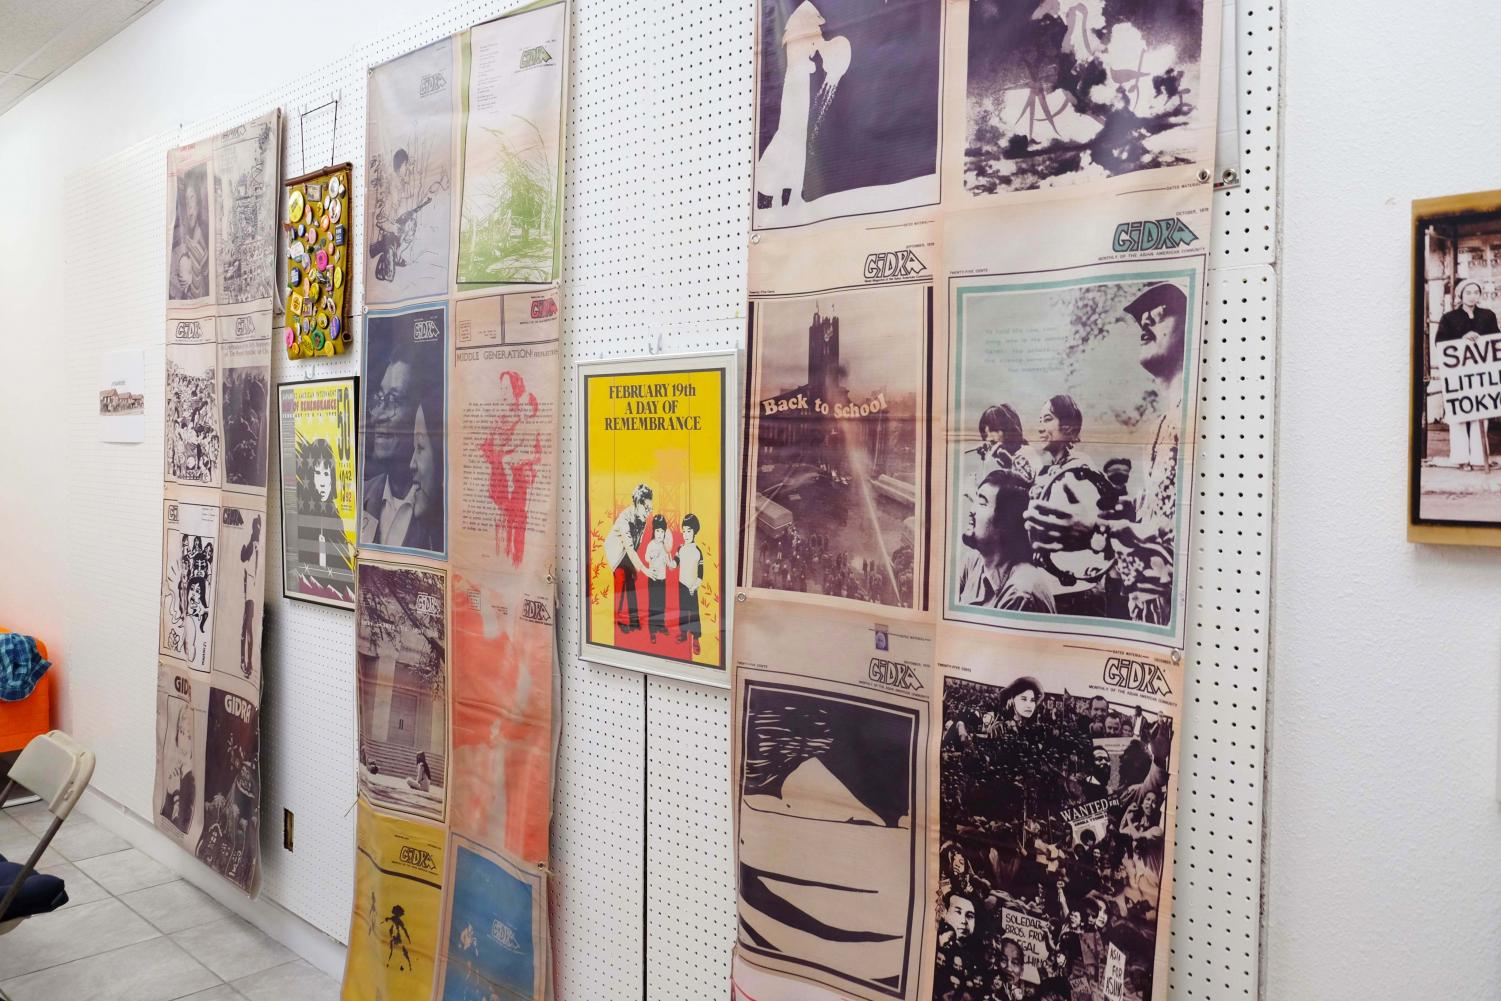 The walls of the room, covered with colorful posters.